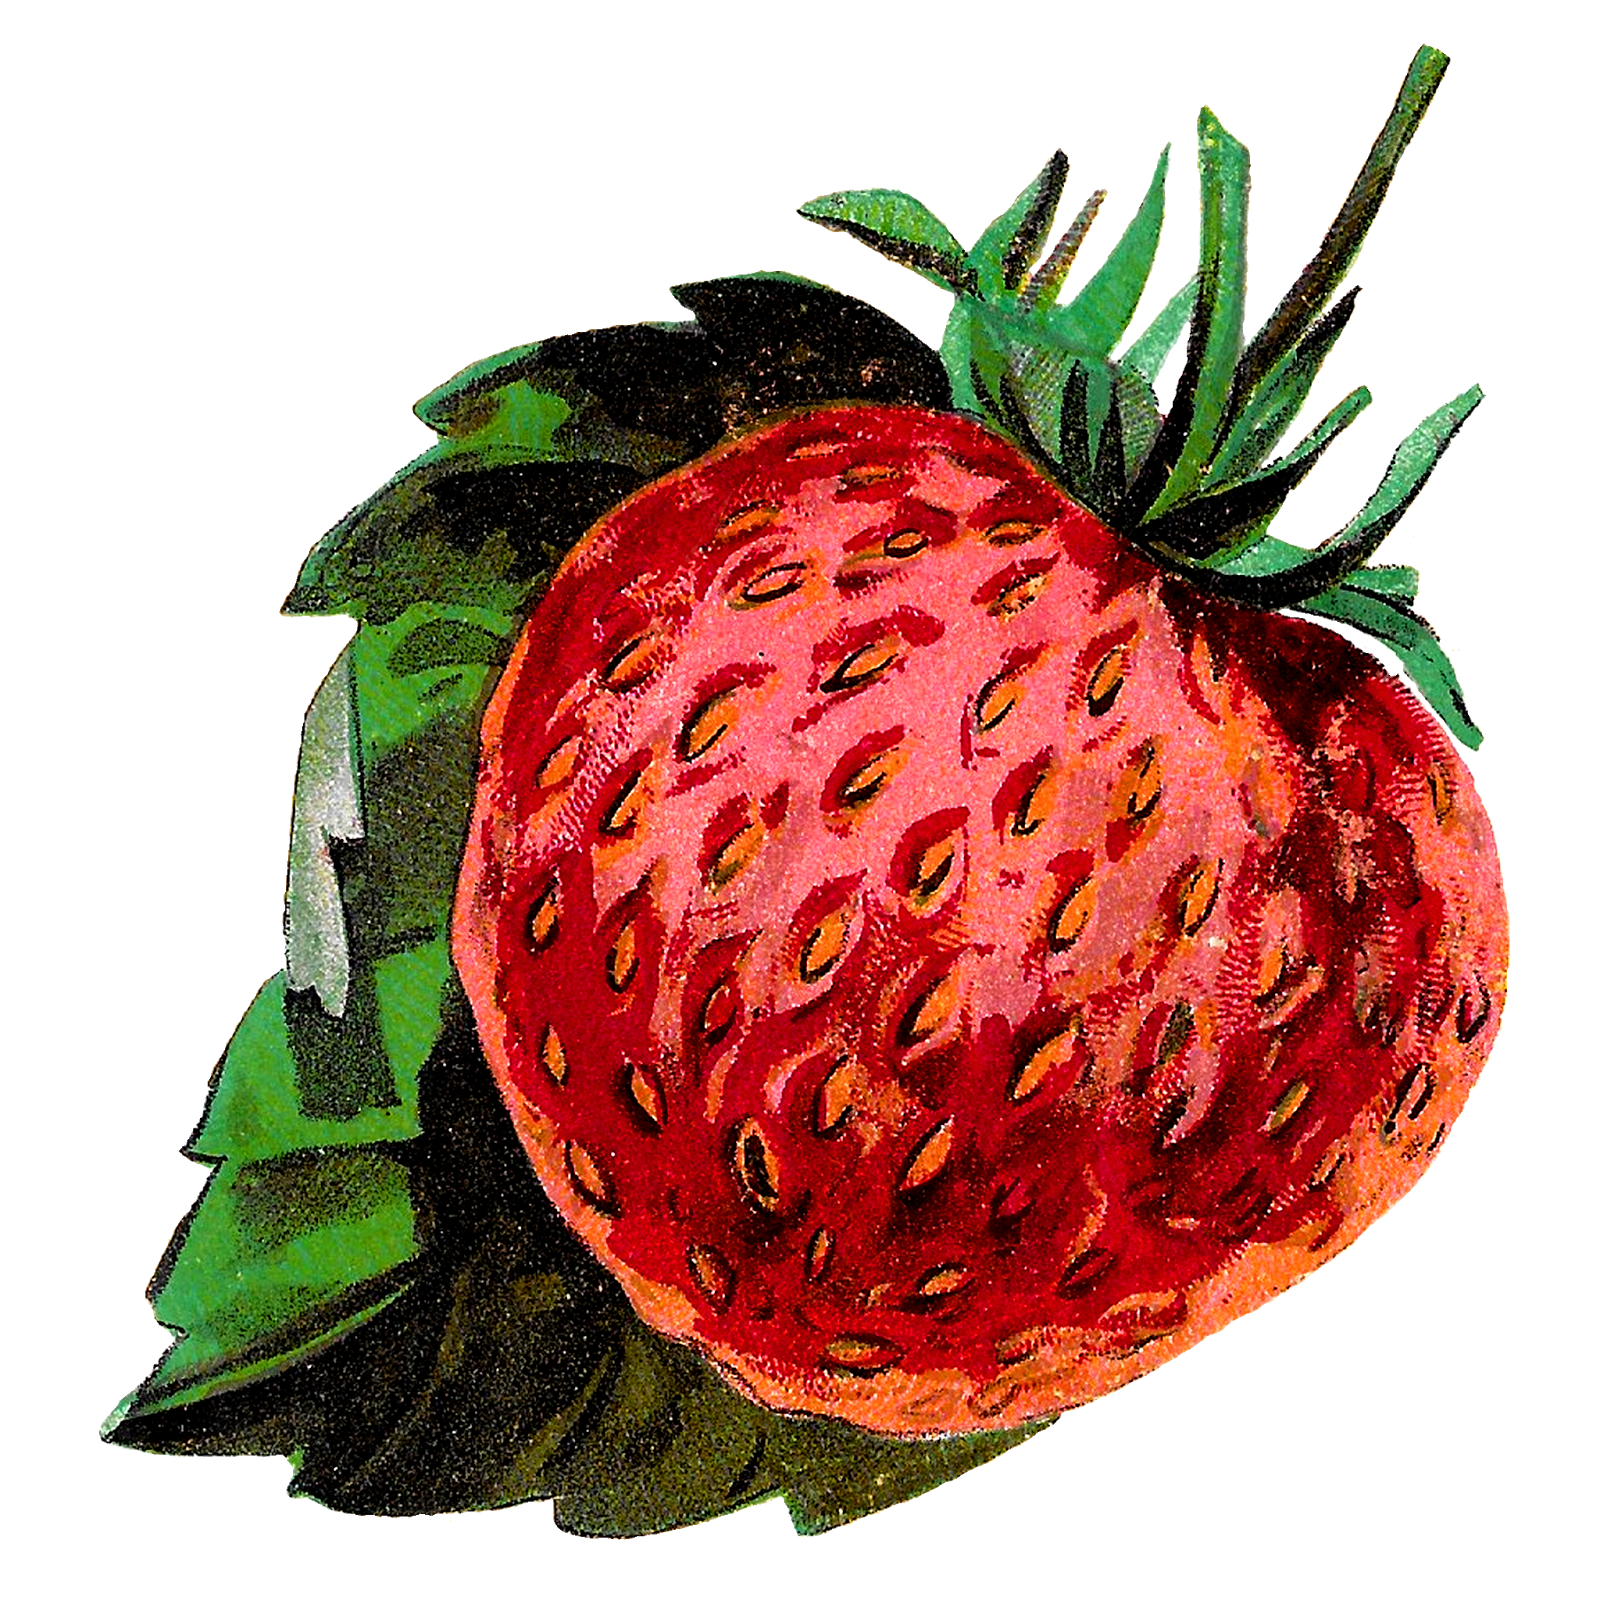 Jelly clipart homemade jam. Antique images strawberries fruit